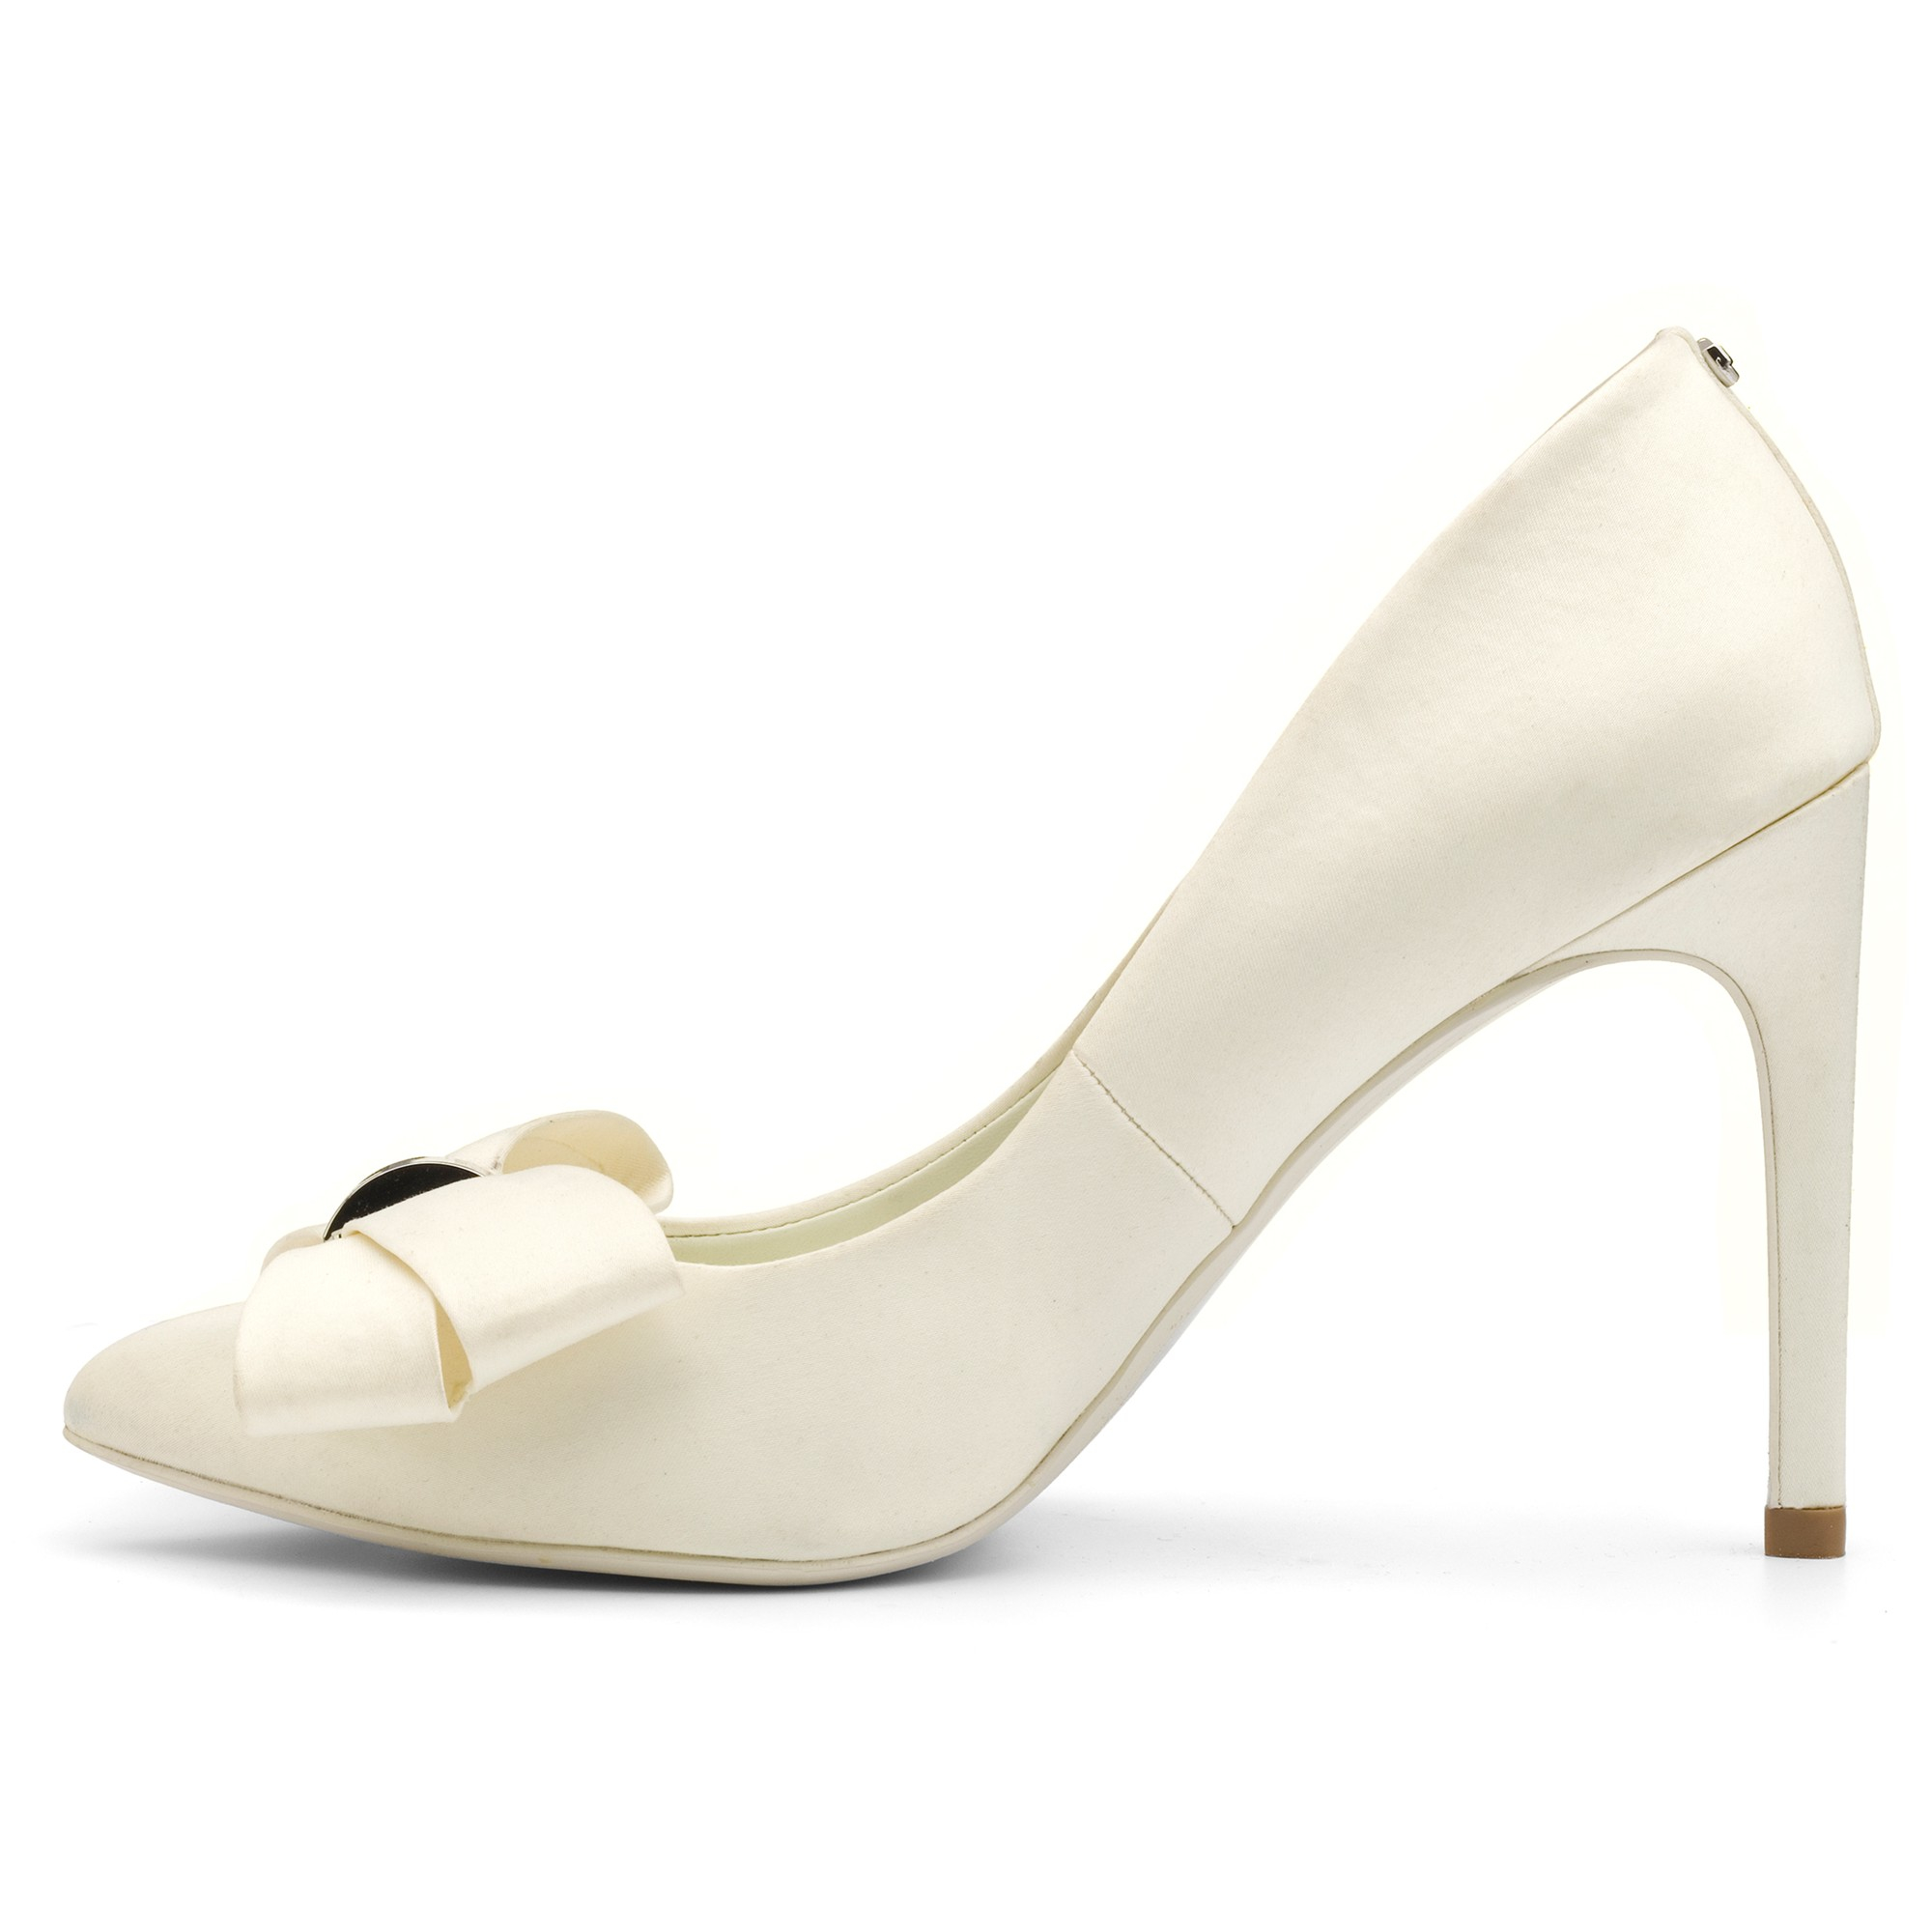 2683c3d8a8ca Ted Baker Ichlibi Pointed Toe Stiletto Court Shoes - Lyst